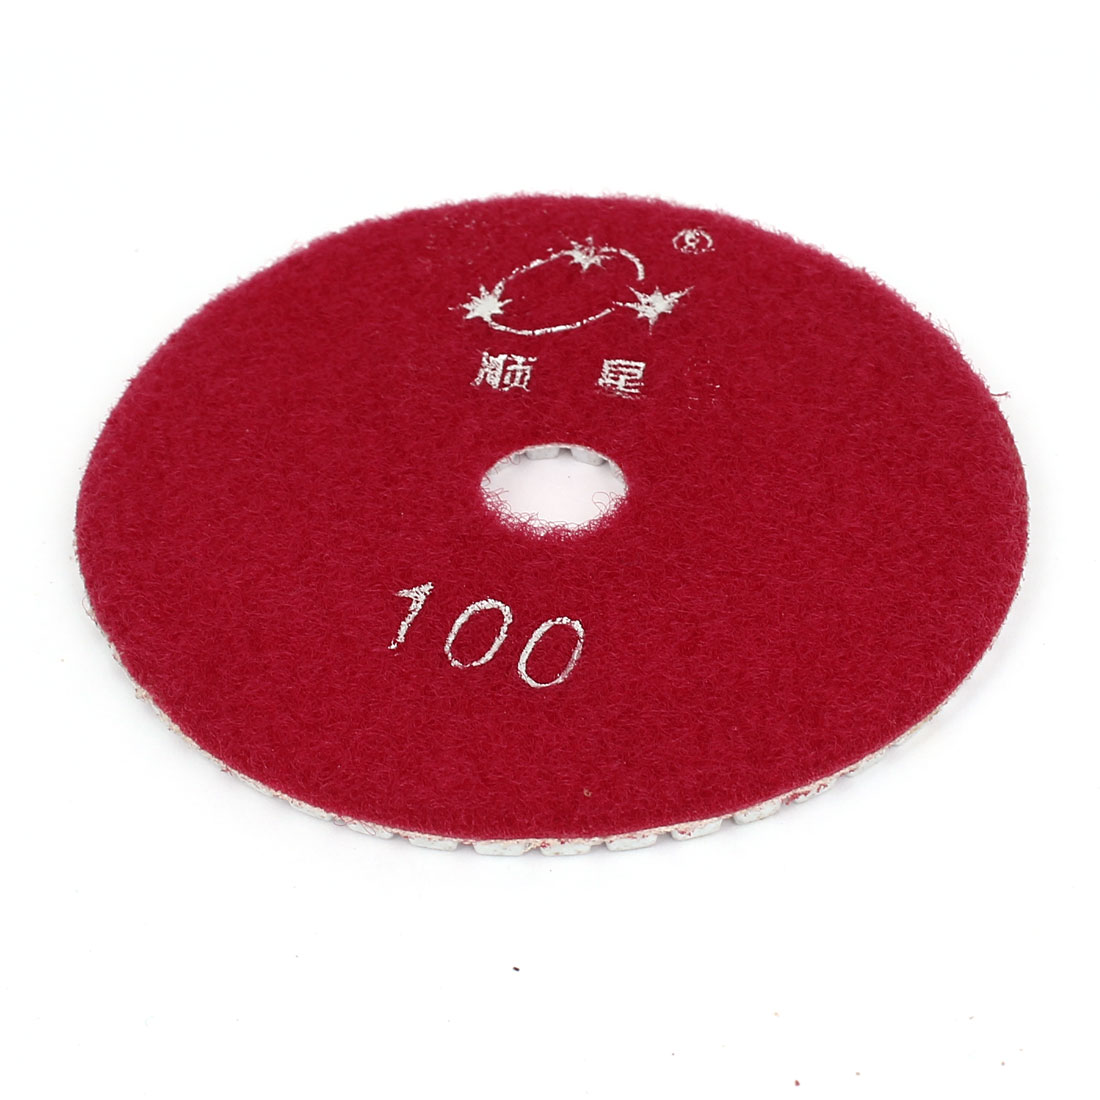 "4"" Diameter Diamond Polishing Wet Pad Red 100 Grit for Granite Concrete Marble"